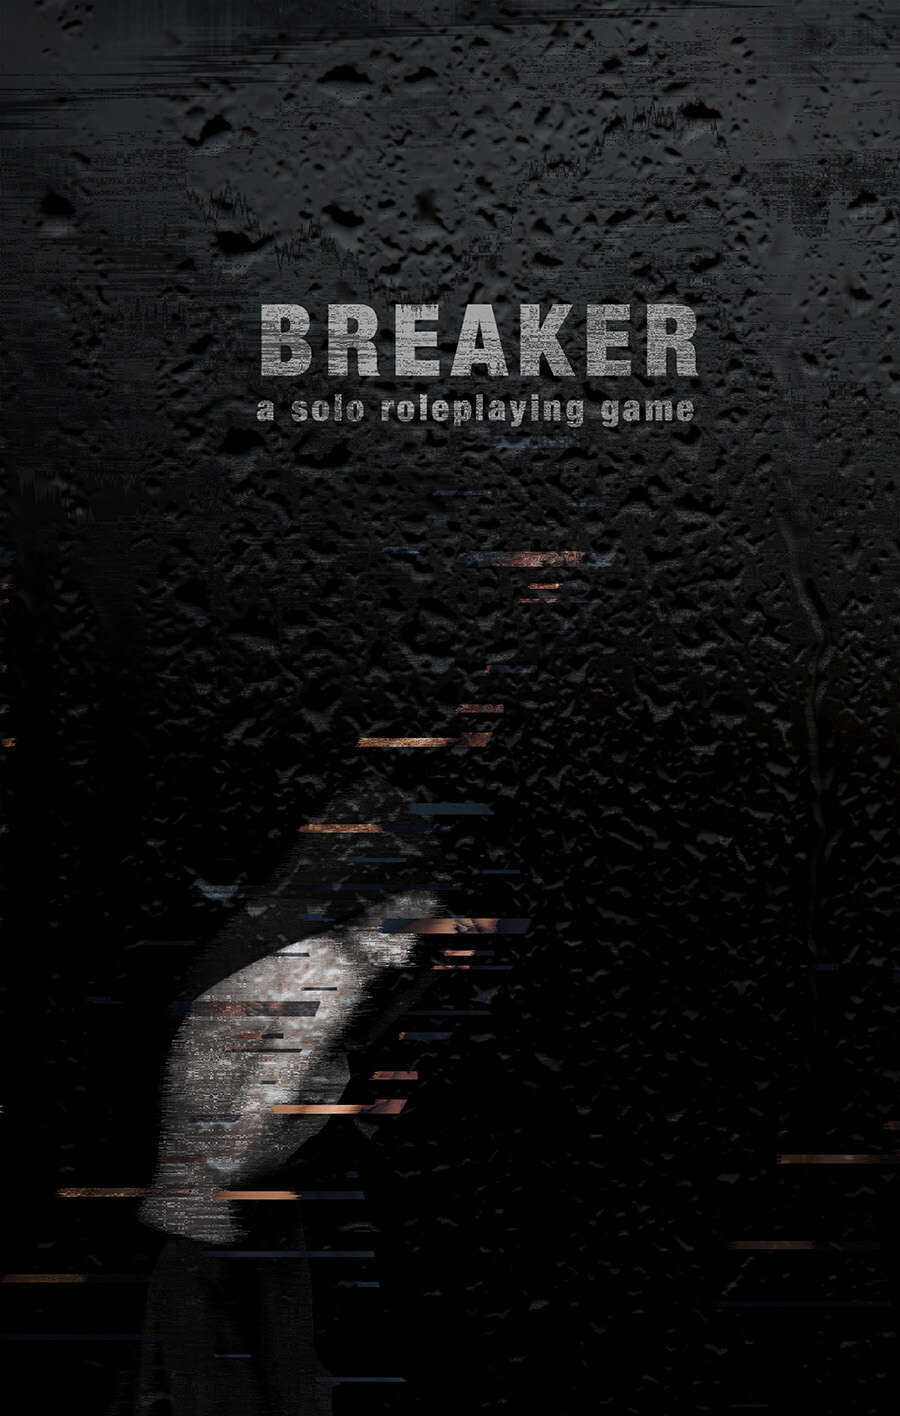 Cover of Breaker Solo Roleplaying